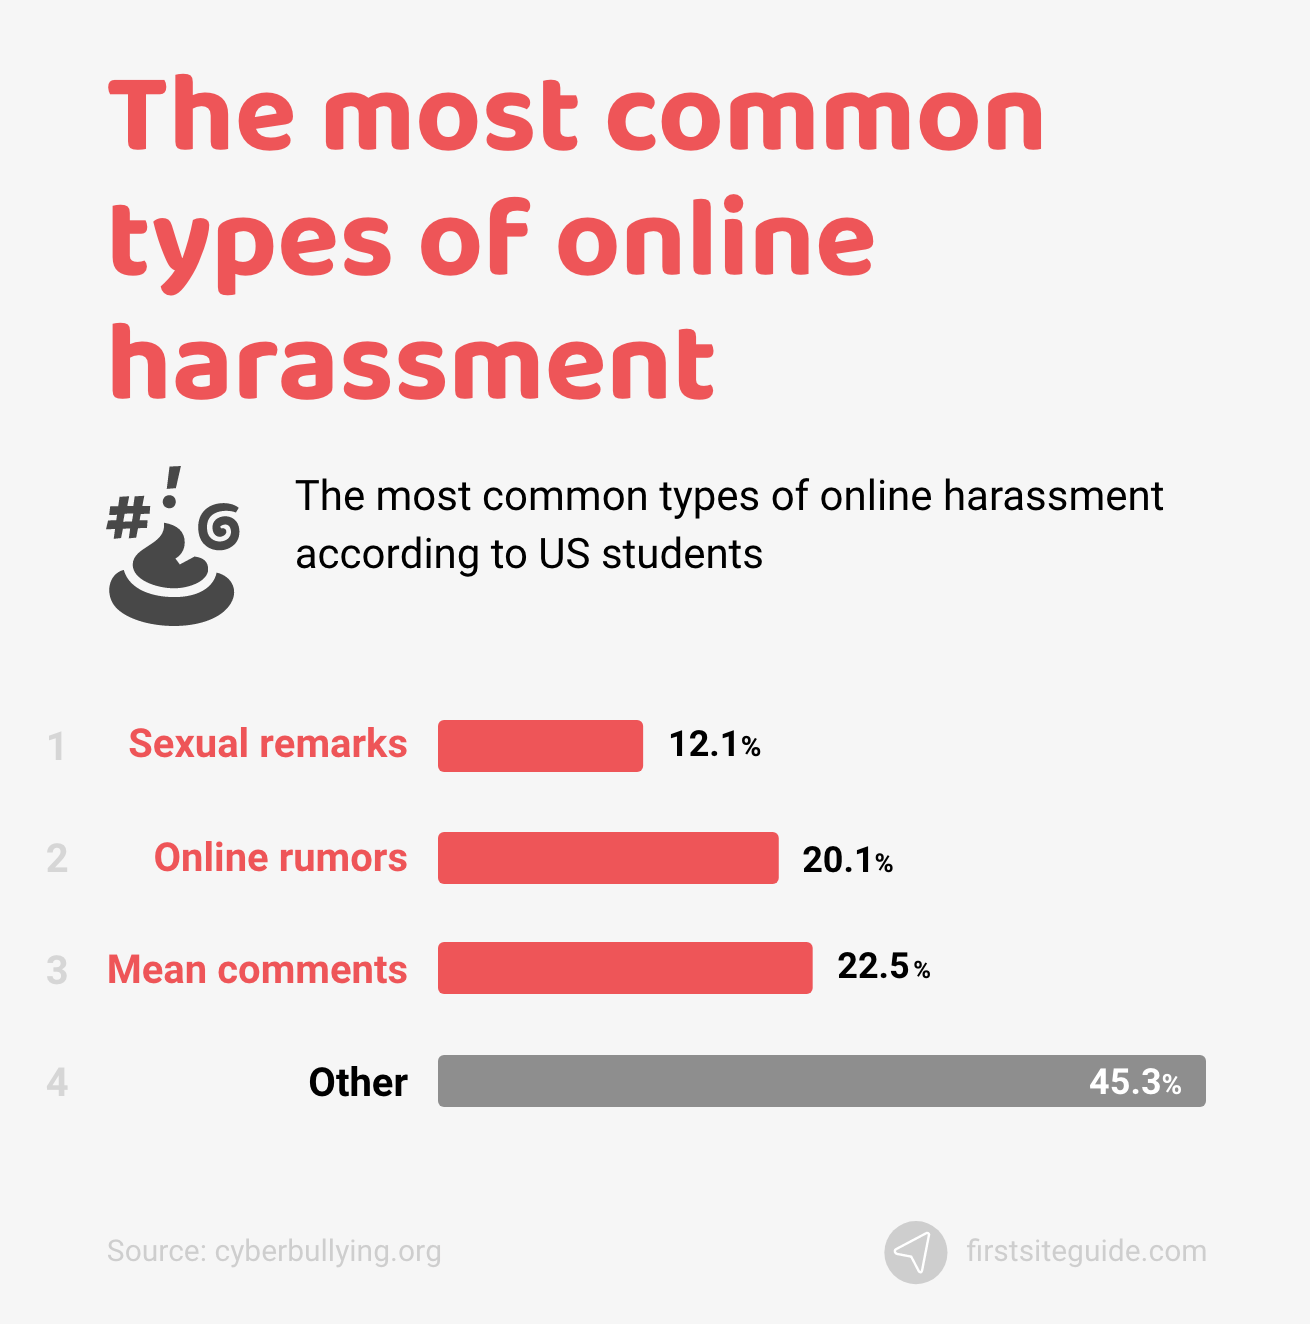 The most common types of online harassment